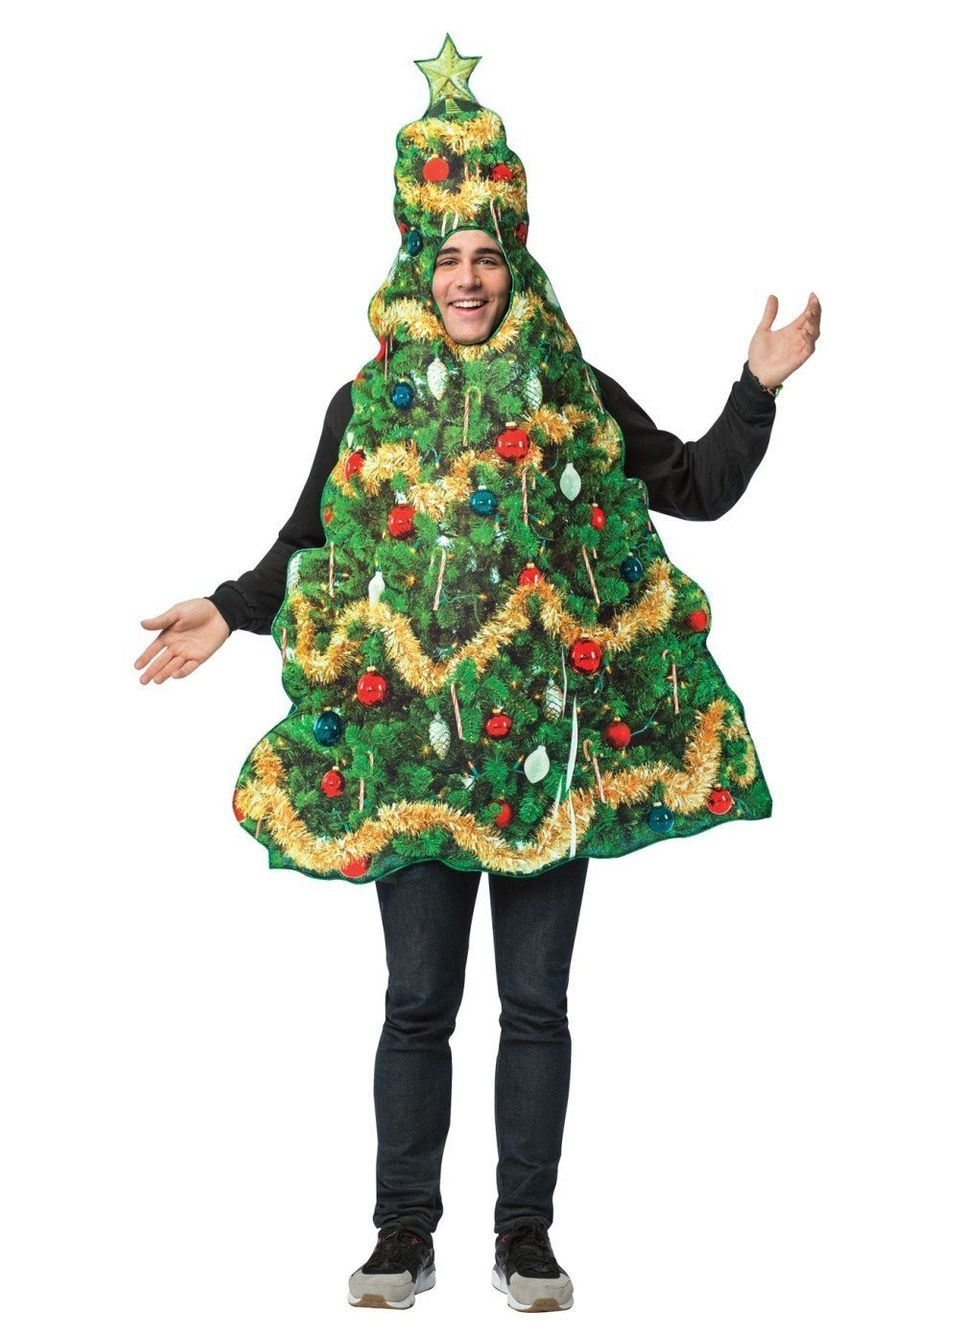 For some people, ugly Christmas sweaters aren't enough to express their enjoyment of the holiday season. So here's a&nbsp;<a